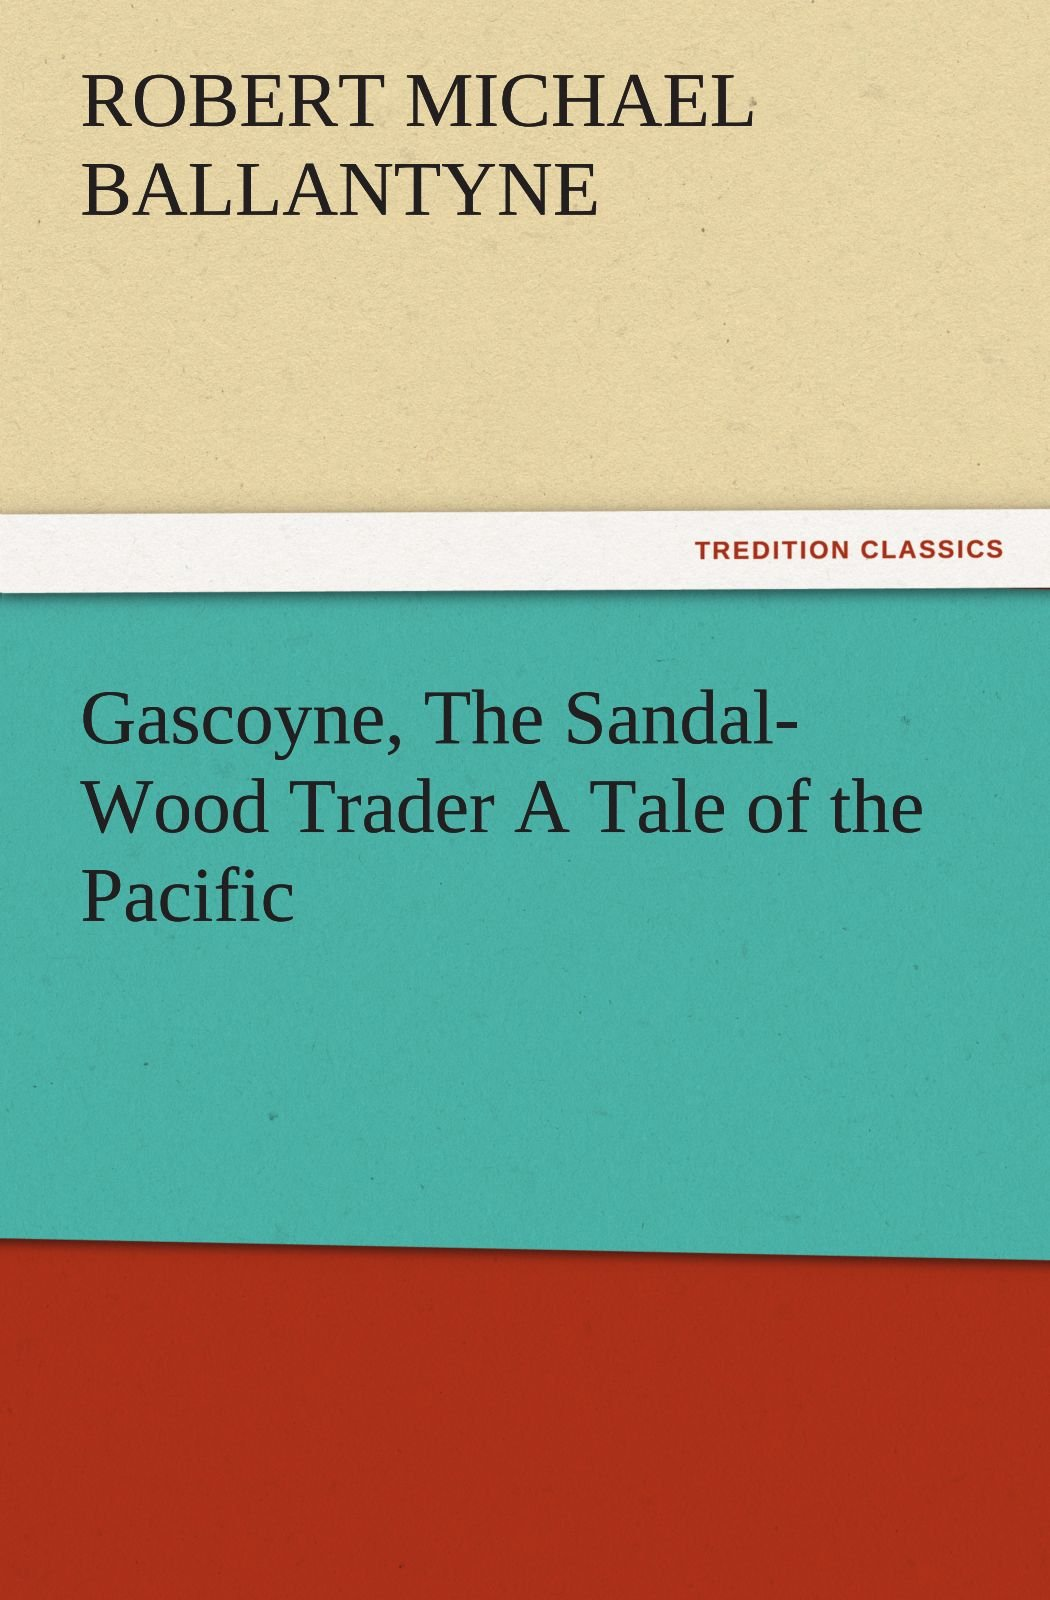 Read Online Gascoyne, The Sandal-Wood Trader A Tale of the Pacific (TREDITION CLASSICS) pdf epub